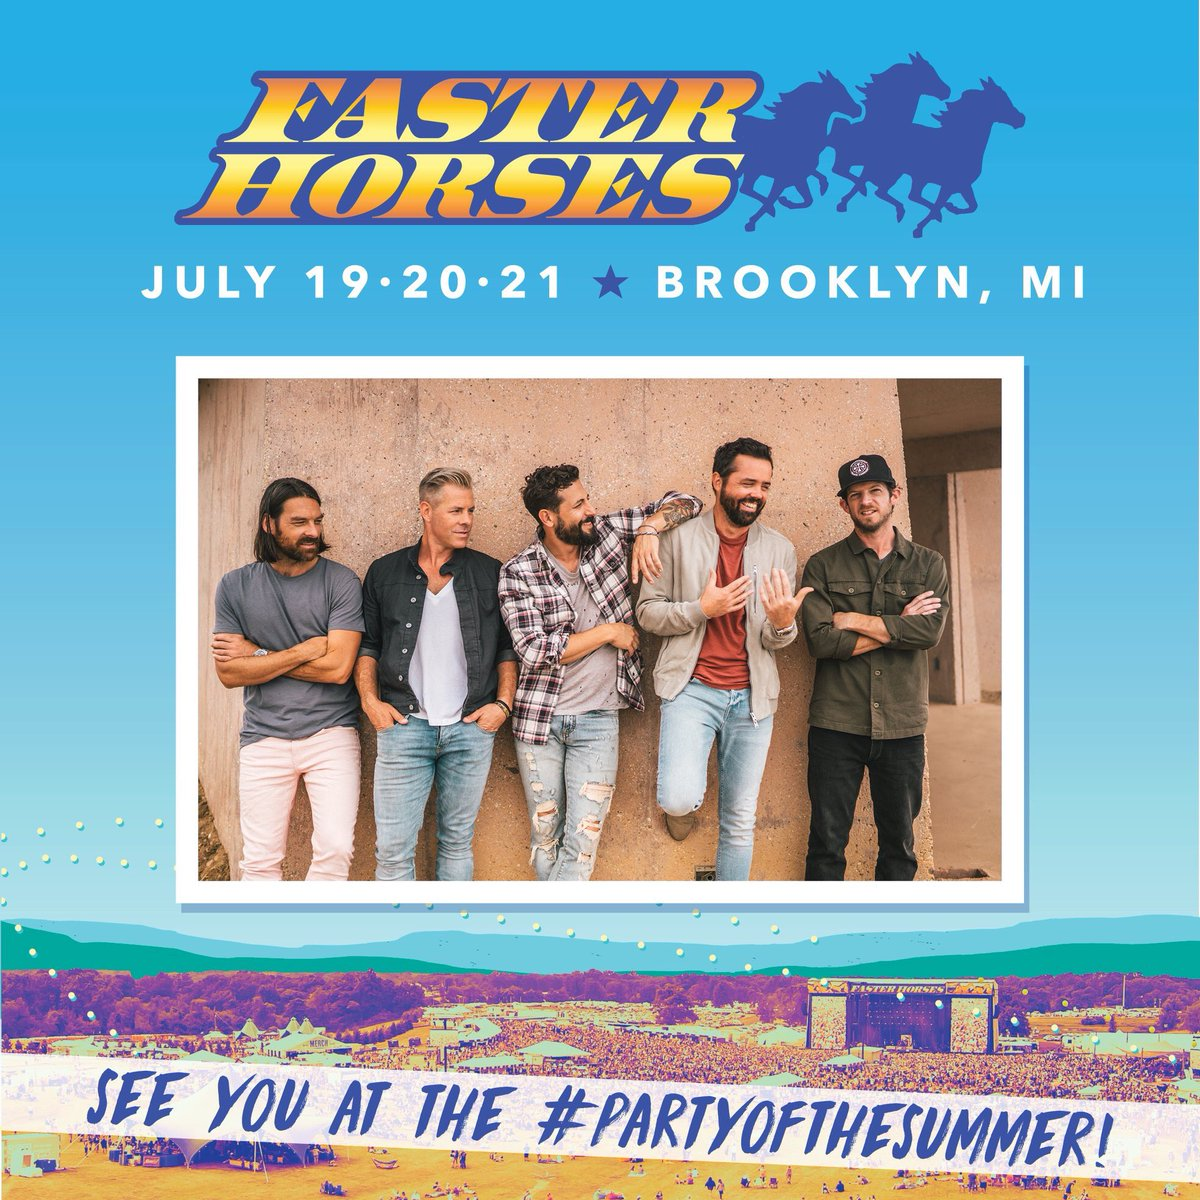 Old Dominion's photo on Faster Horses